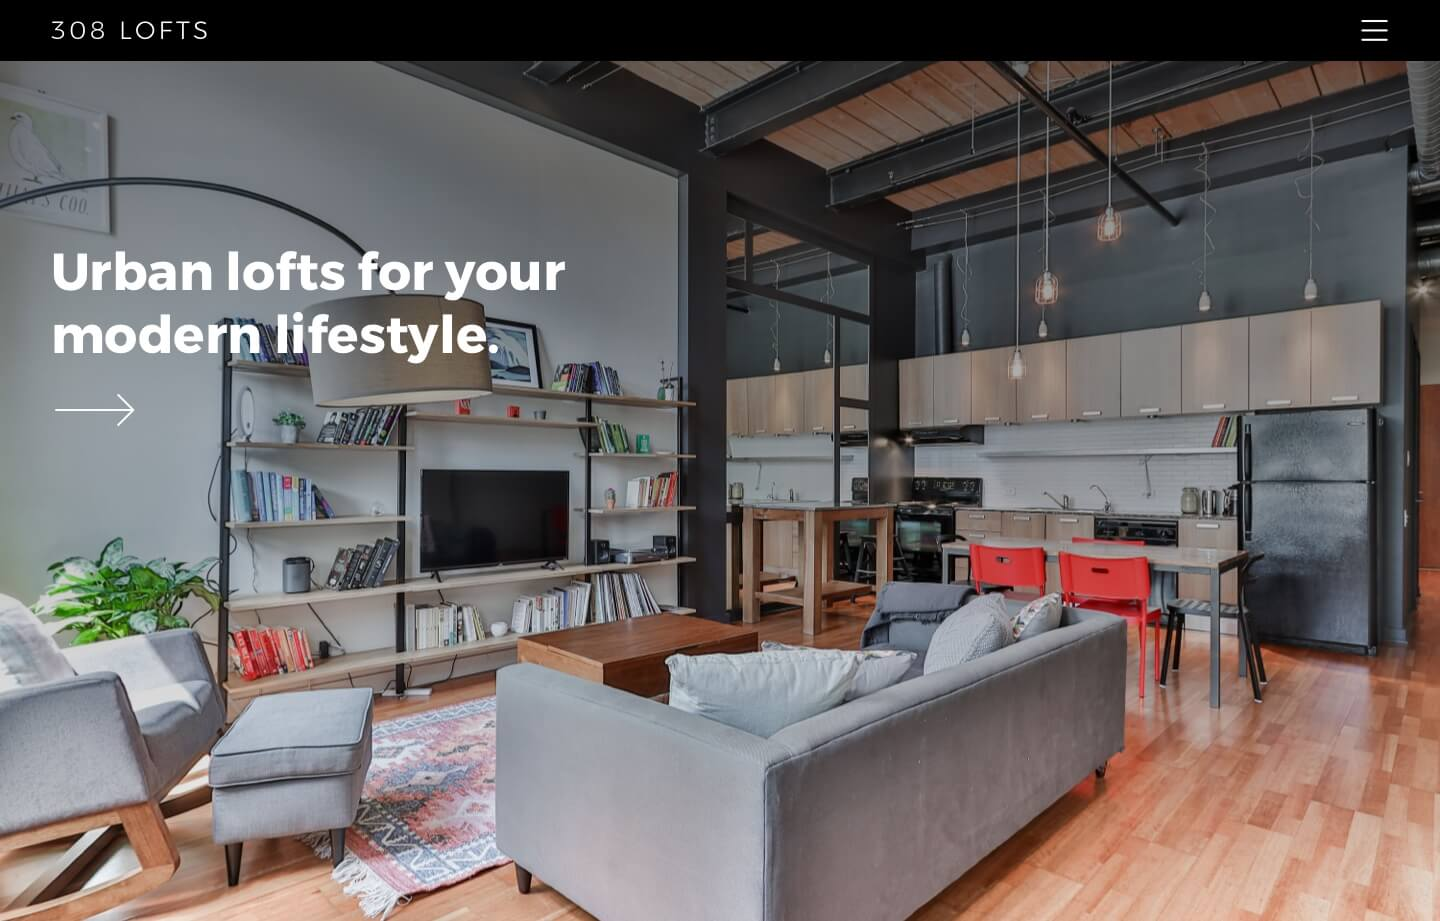 website for 308 lofts and real estate